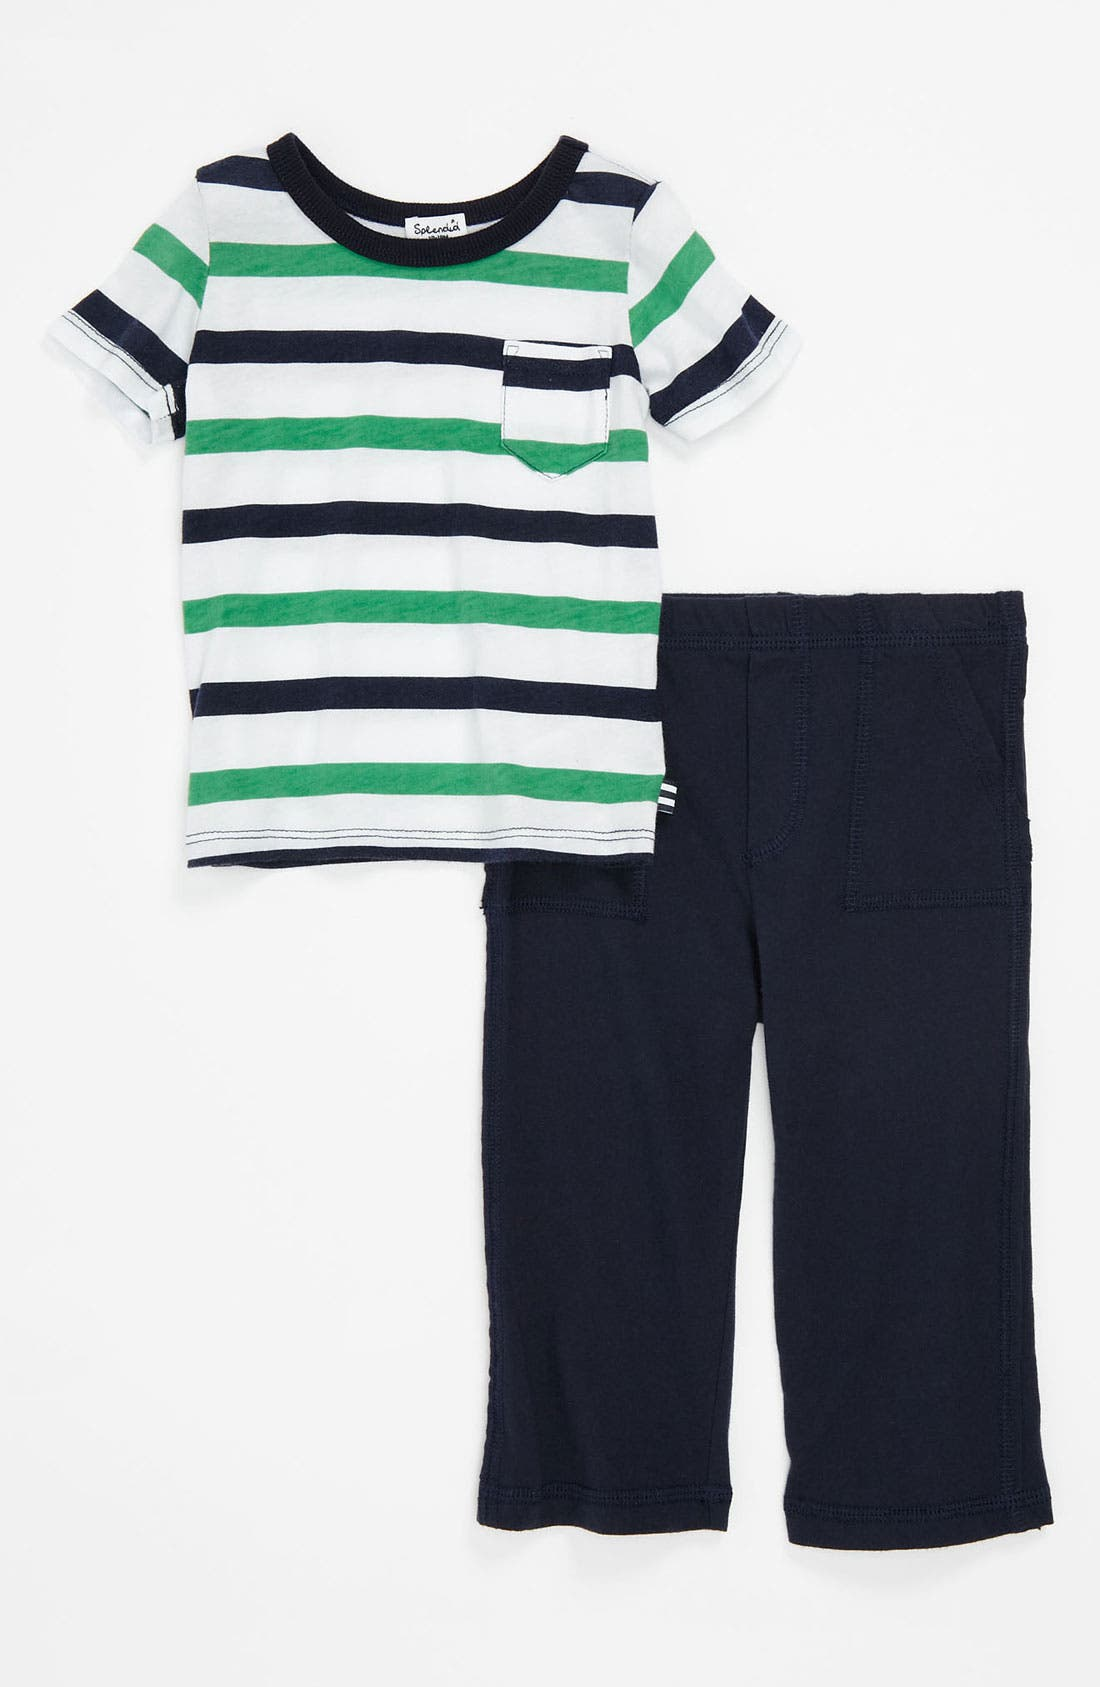 Alternate Image 1 Selected - Splendid Stripe Top & Knit Pants (Toddler)